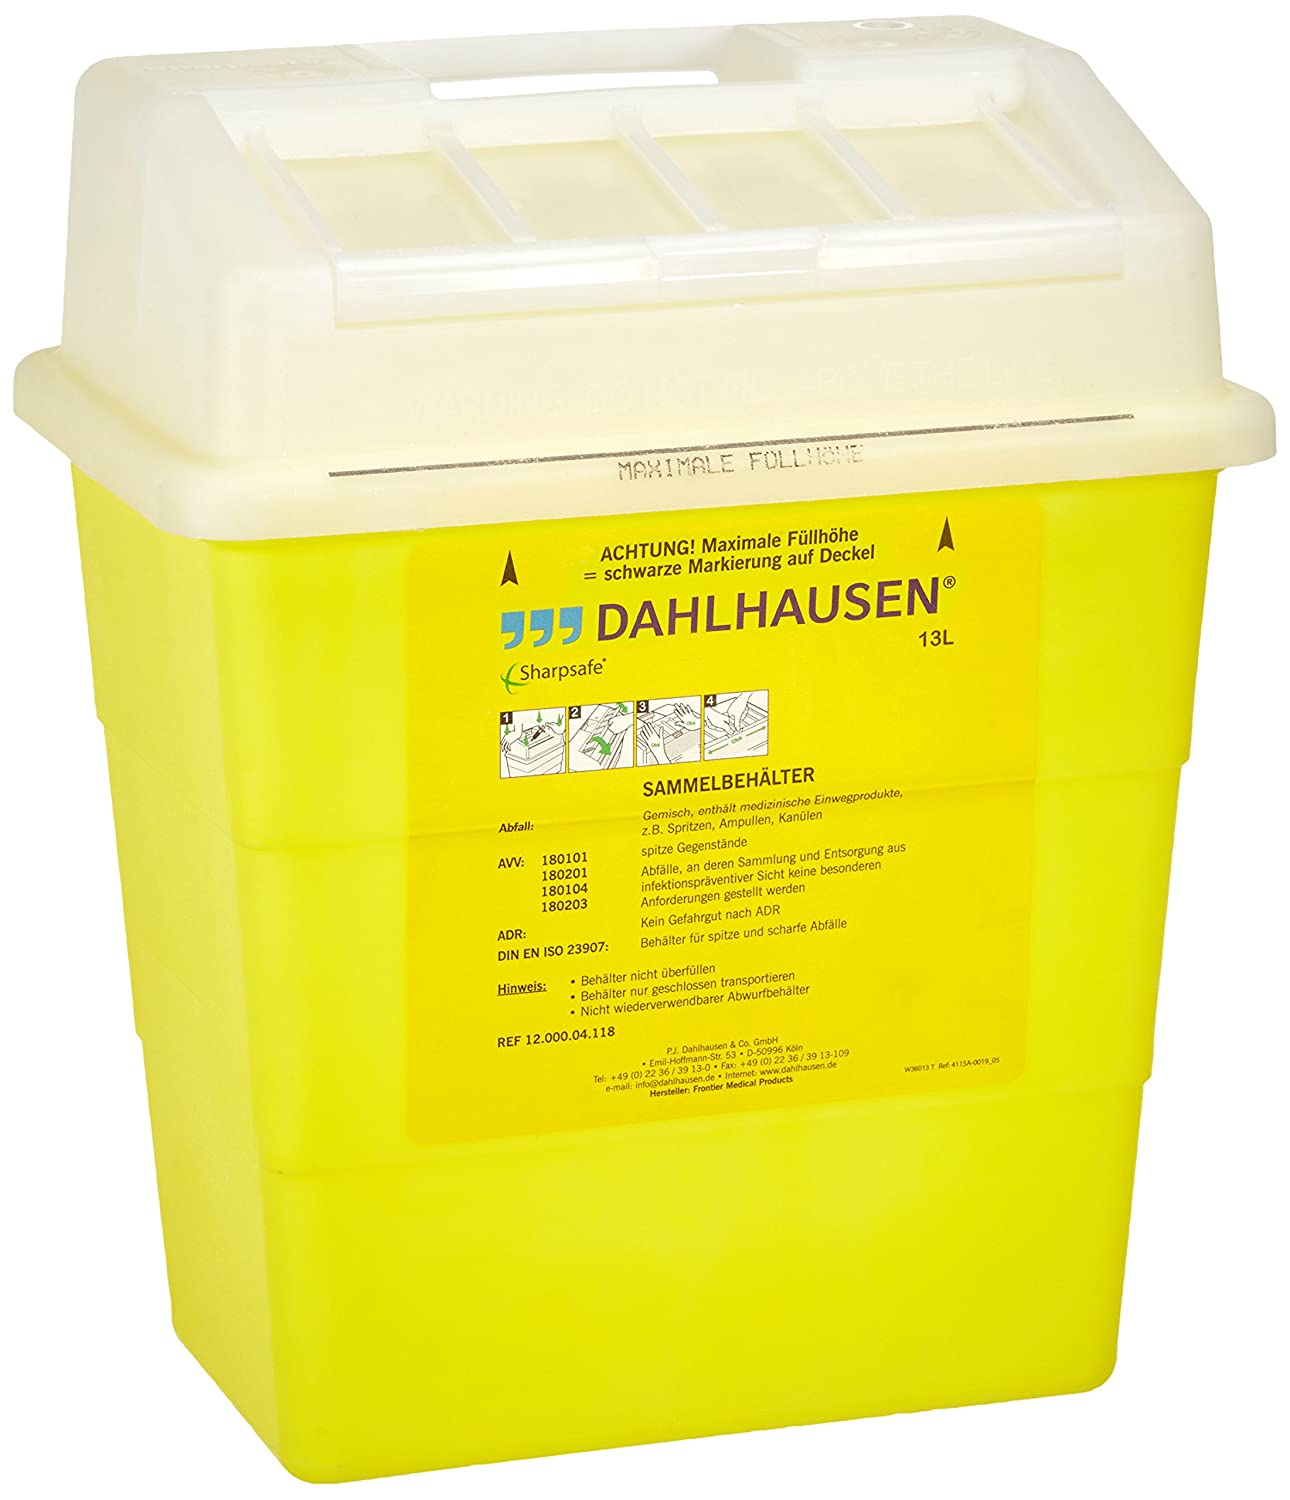 Neolab 3  2058  Sharpsafe Security Container Polypropylene Box Container 3-2058